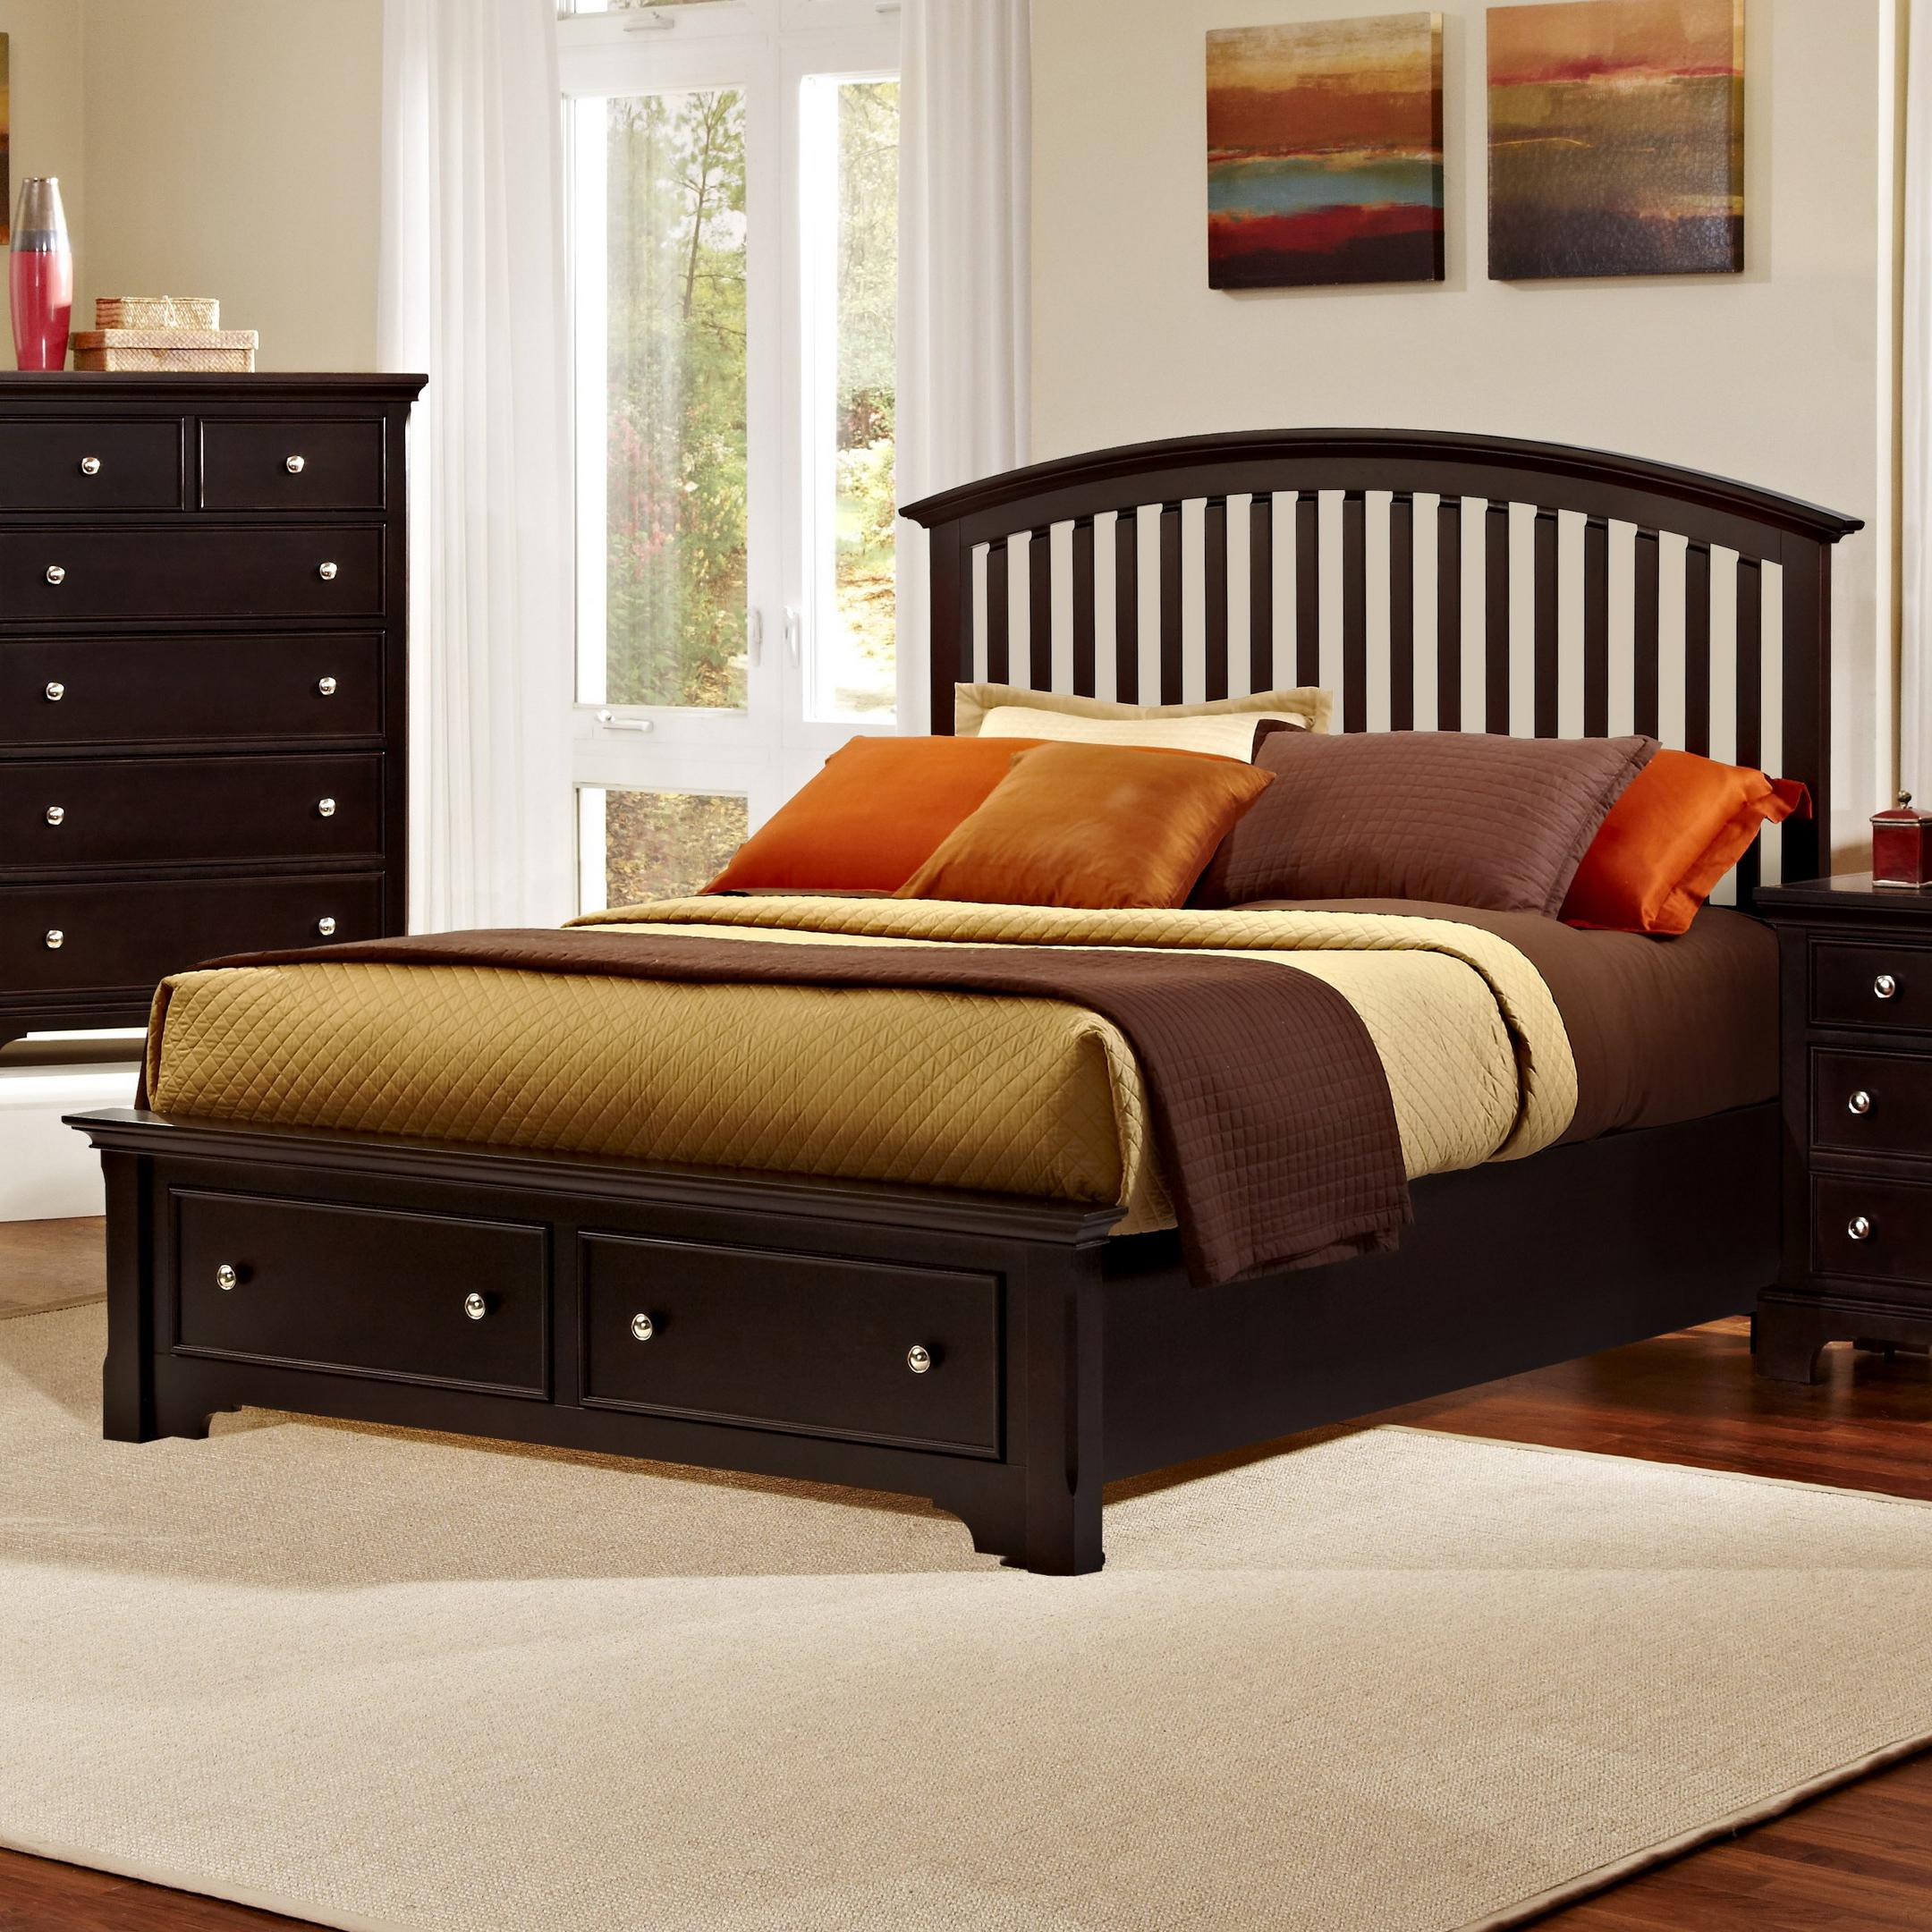 Vaughan Bassett Forsyth King Arched Storage Bed - Item Number: BB76-669+066B+502+666T